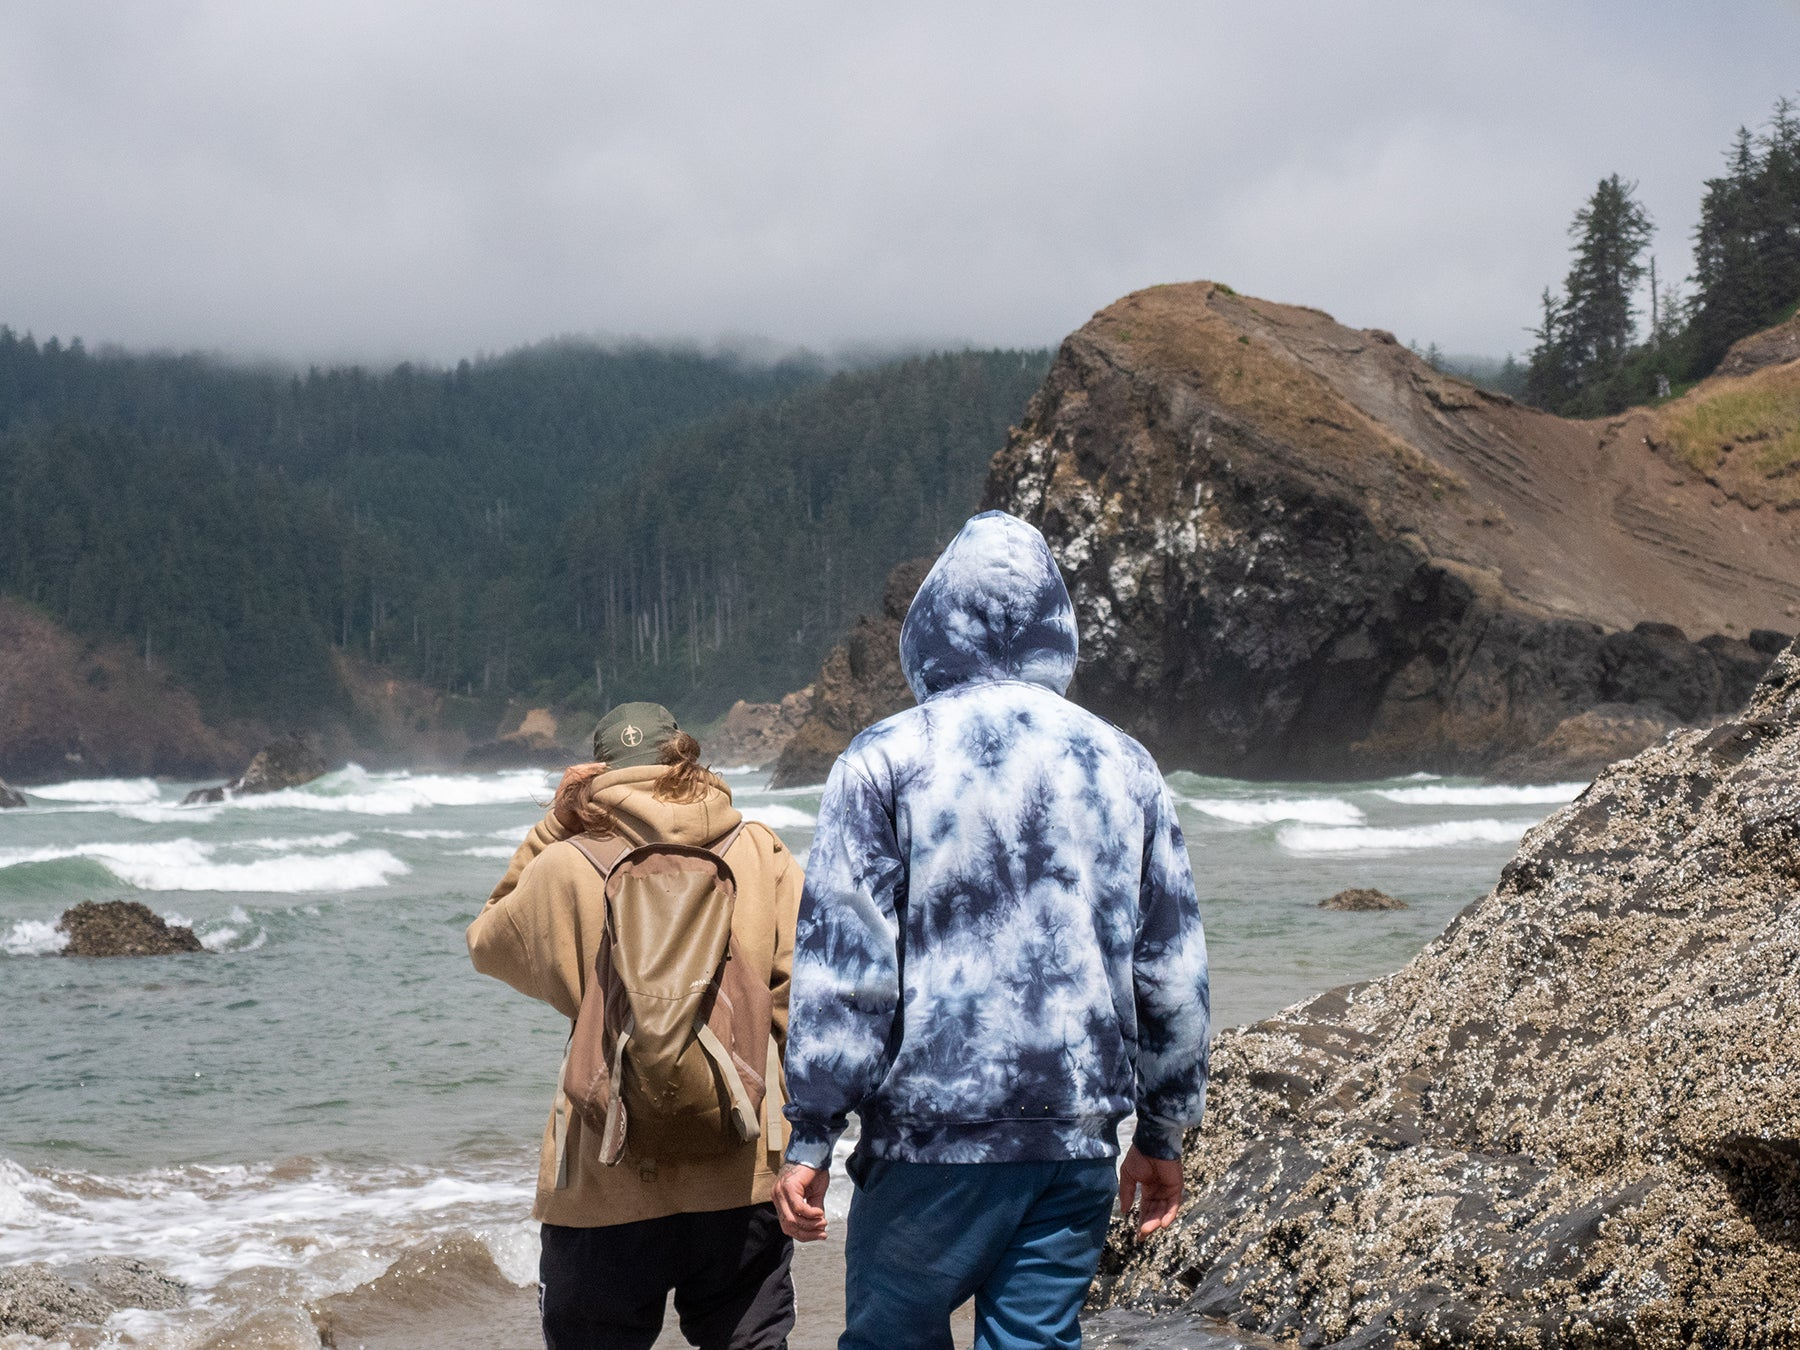 Welcome to the Pacific Ocean with Treefort Lifestyles and Phil Casabon